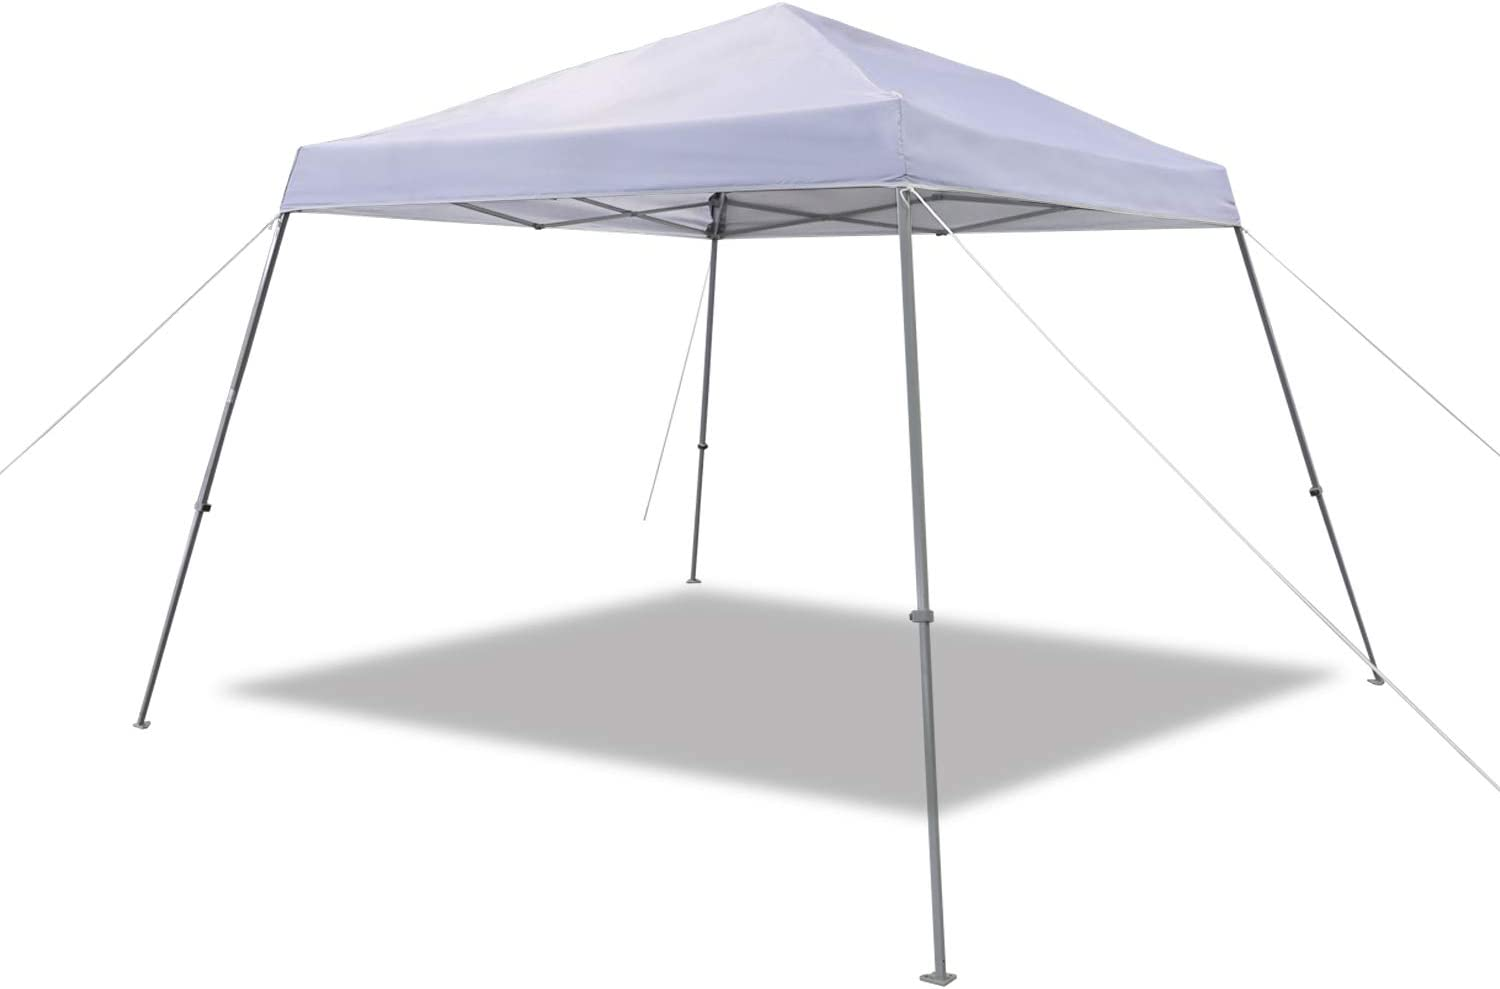 AmazonBasics Outdoor Classic Pop Up Canopy, 9ft x 9ft Top Slant Leg with Wheeled Carry, white